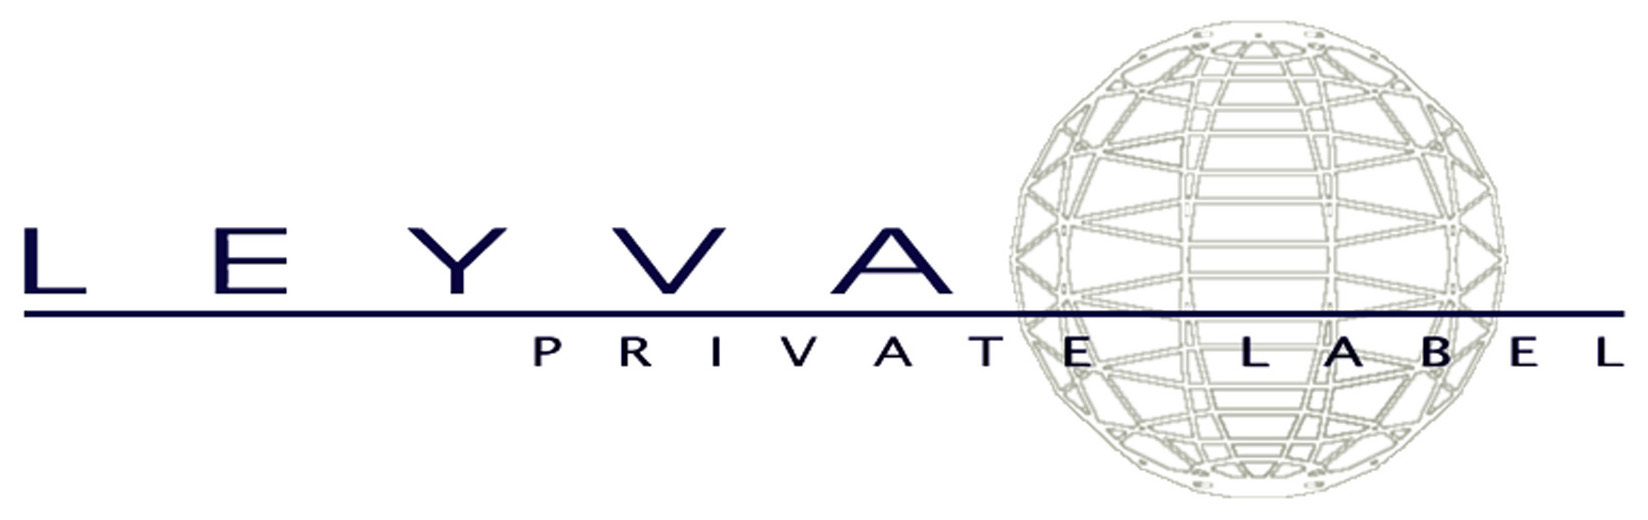 LEYVA PRIVATE LABEL, S.L.